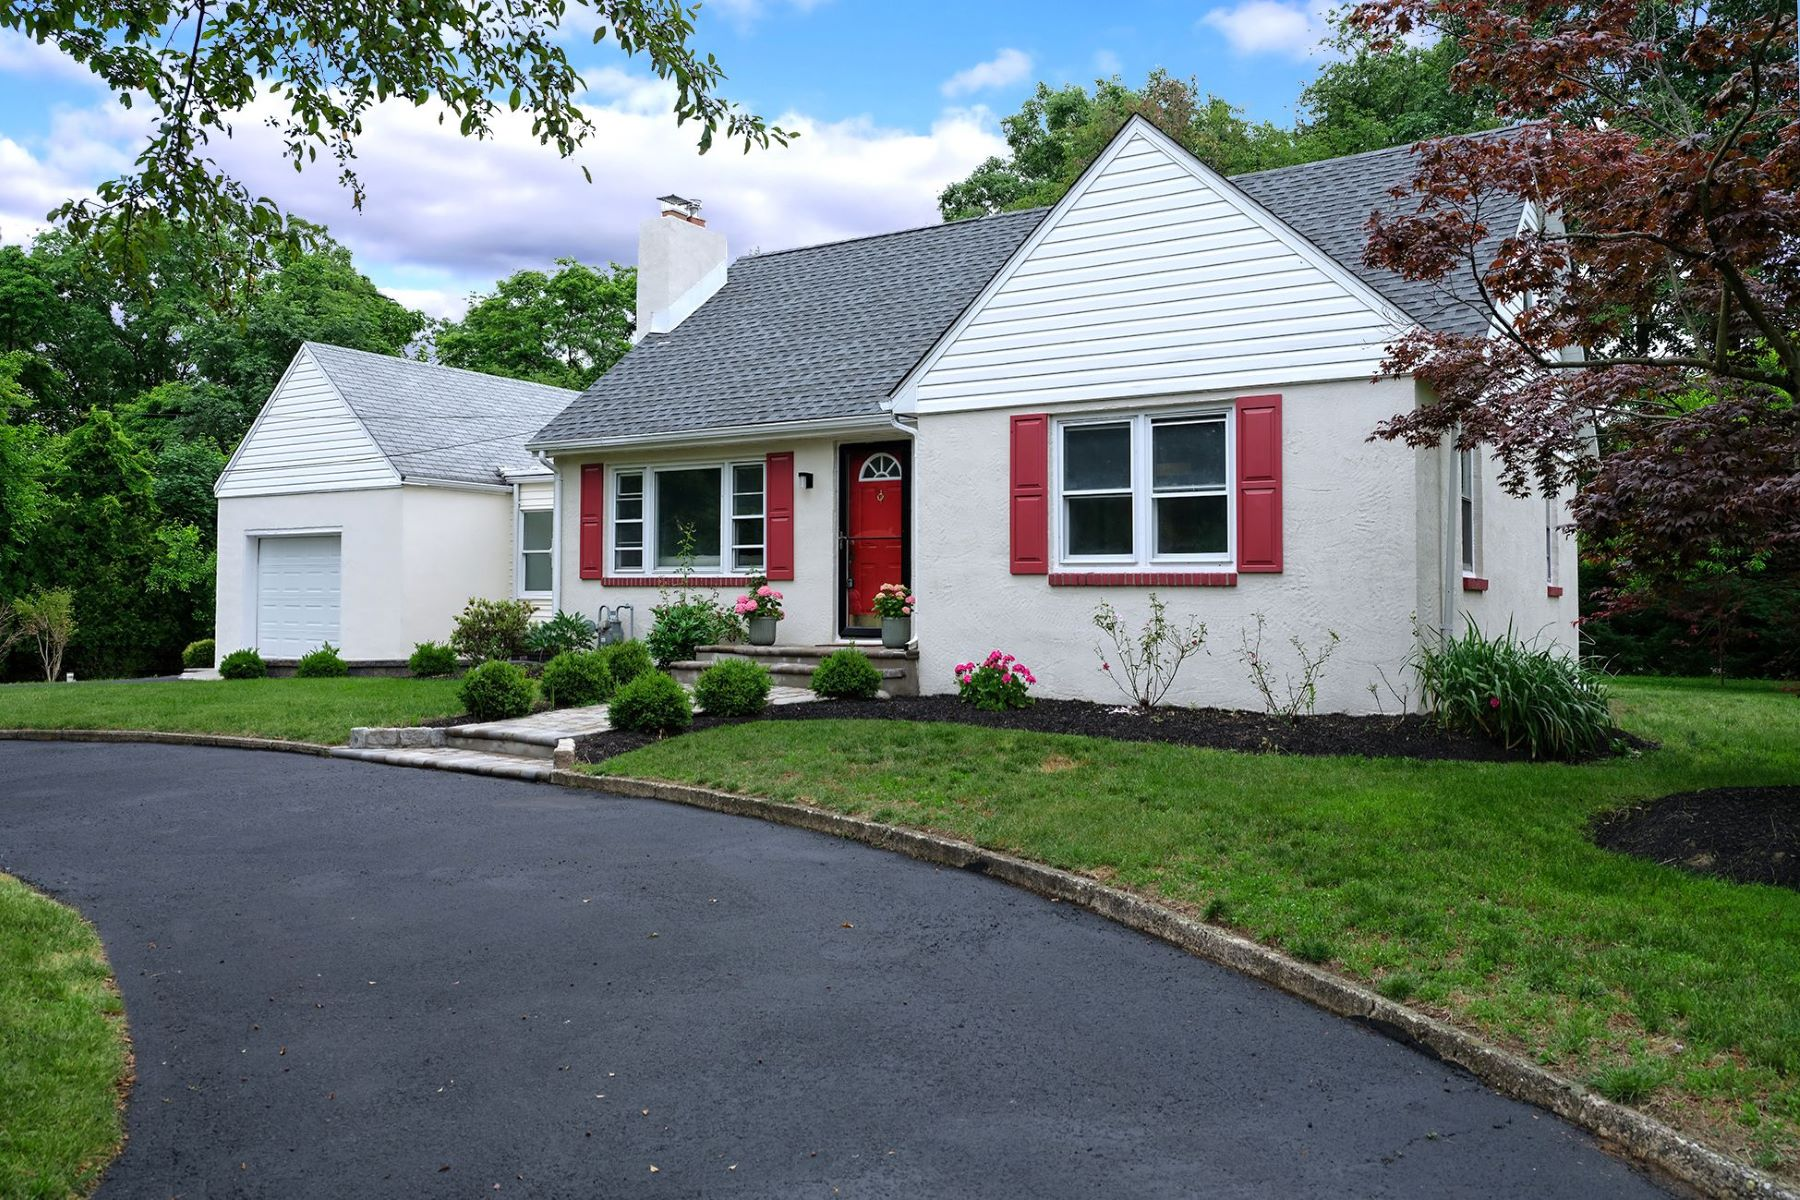 Single Family Homes for Sale at Beautifully Redone Cape, 5 Minutes from Train 119 Rabbit Hill Road, West Windsor, New Jersey 08550 United States